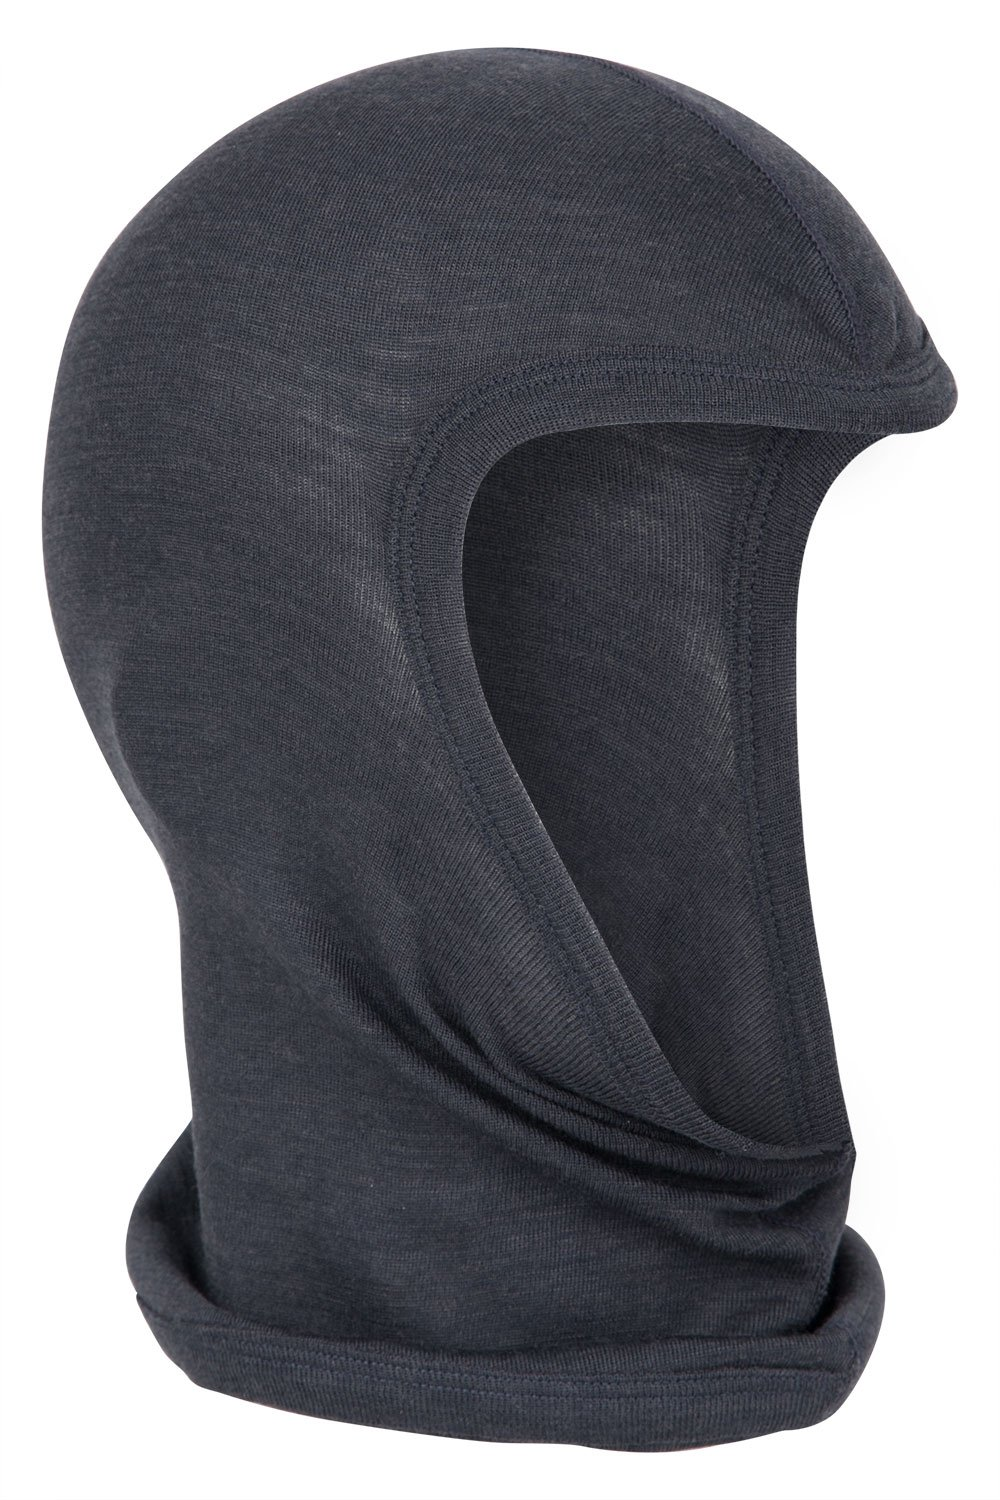 Mountain Warehouse Merino Balaclava - Lightweight Ski Mask, Breathable, Naturally Antibacterial Face Mask, Extra Warm Neck Warmer - Protection form Wind, Dust & Cold